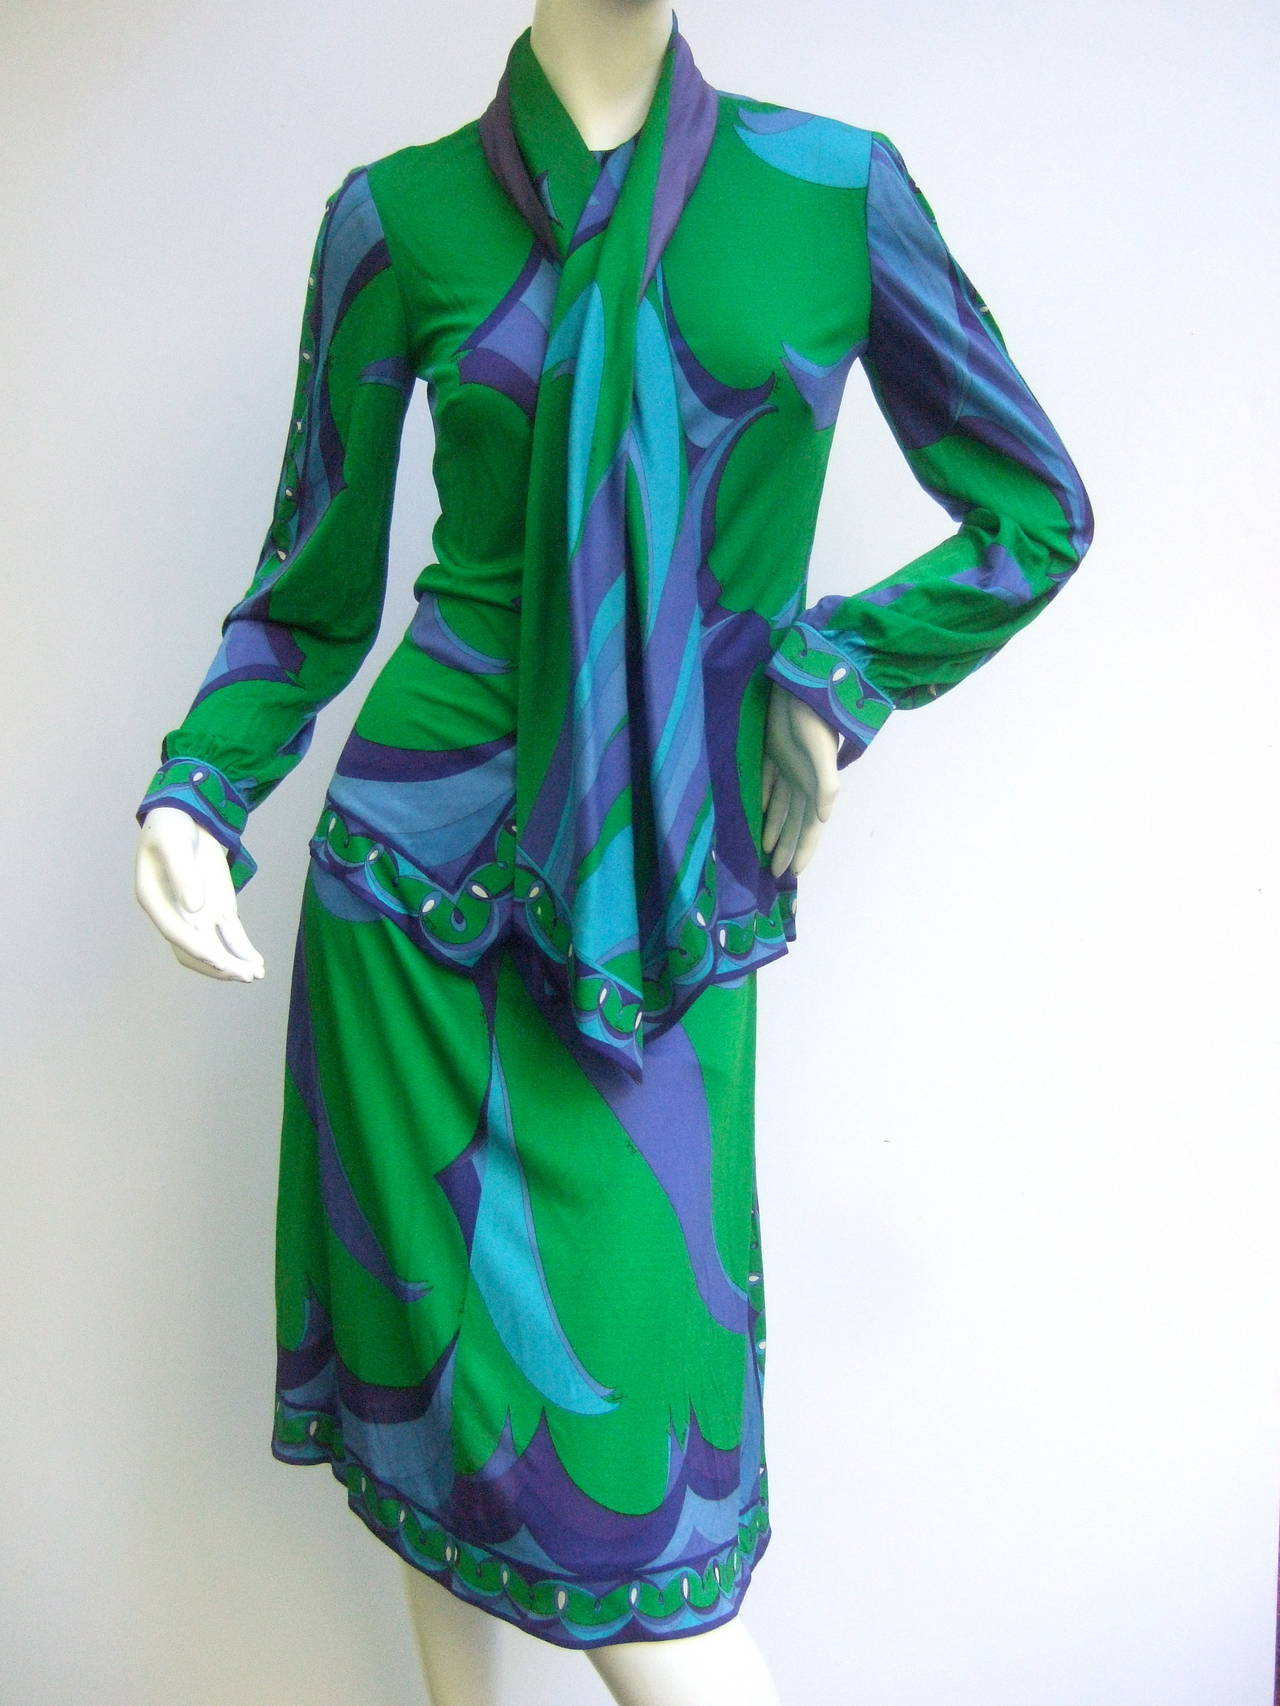 EMILIO PUCCI Silk Jersey Blend Blouse & Skirt Set c 1970 5